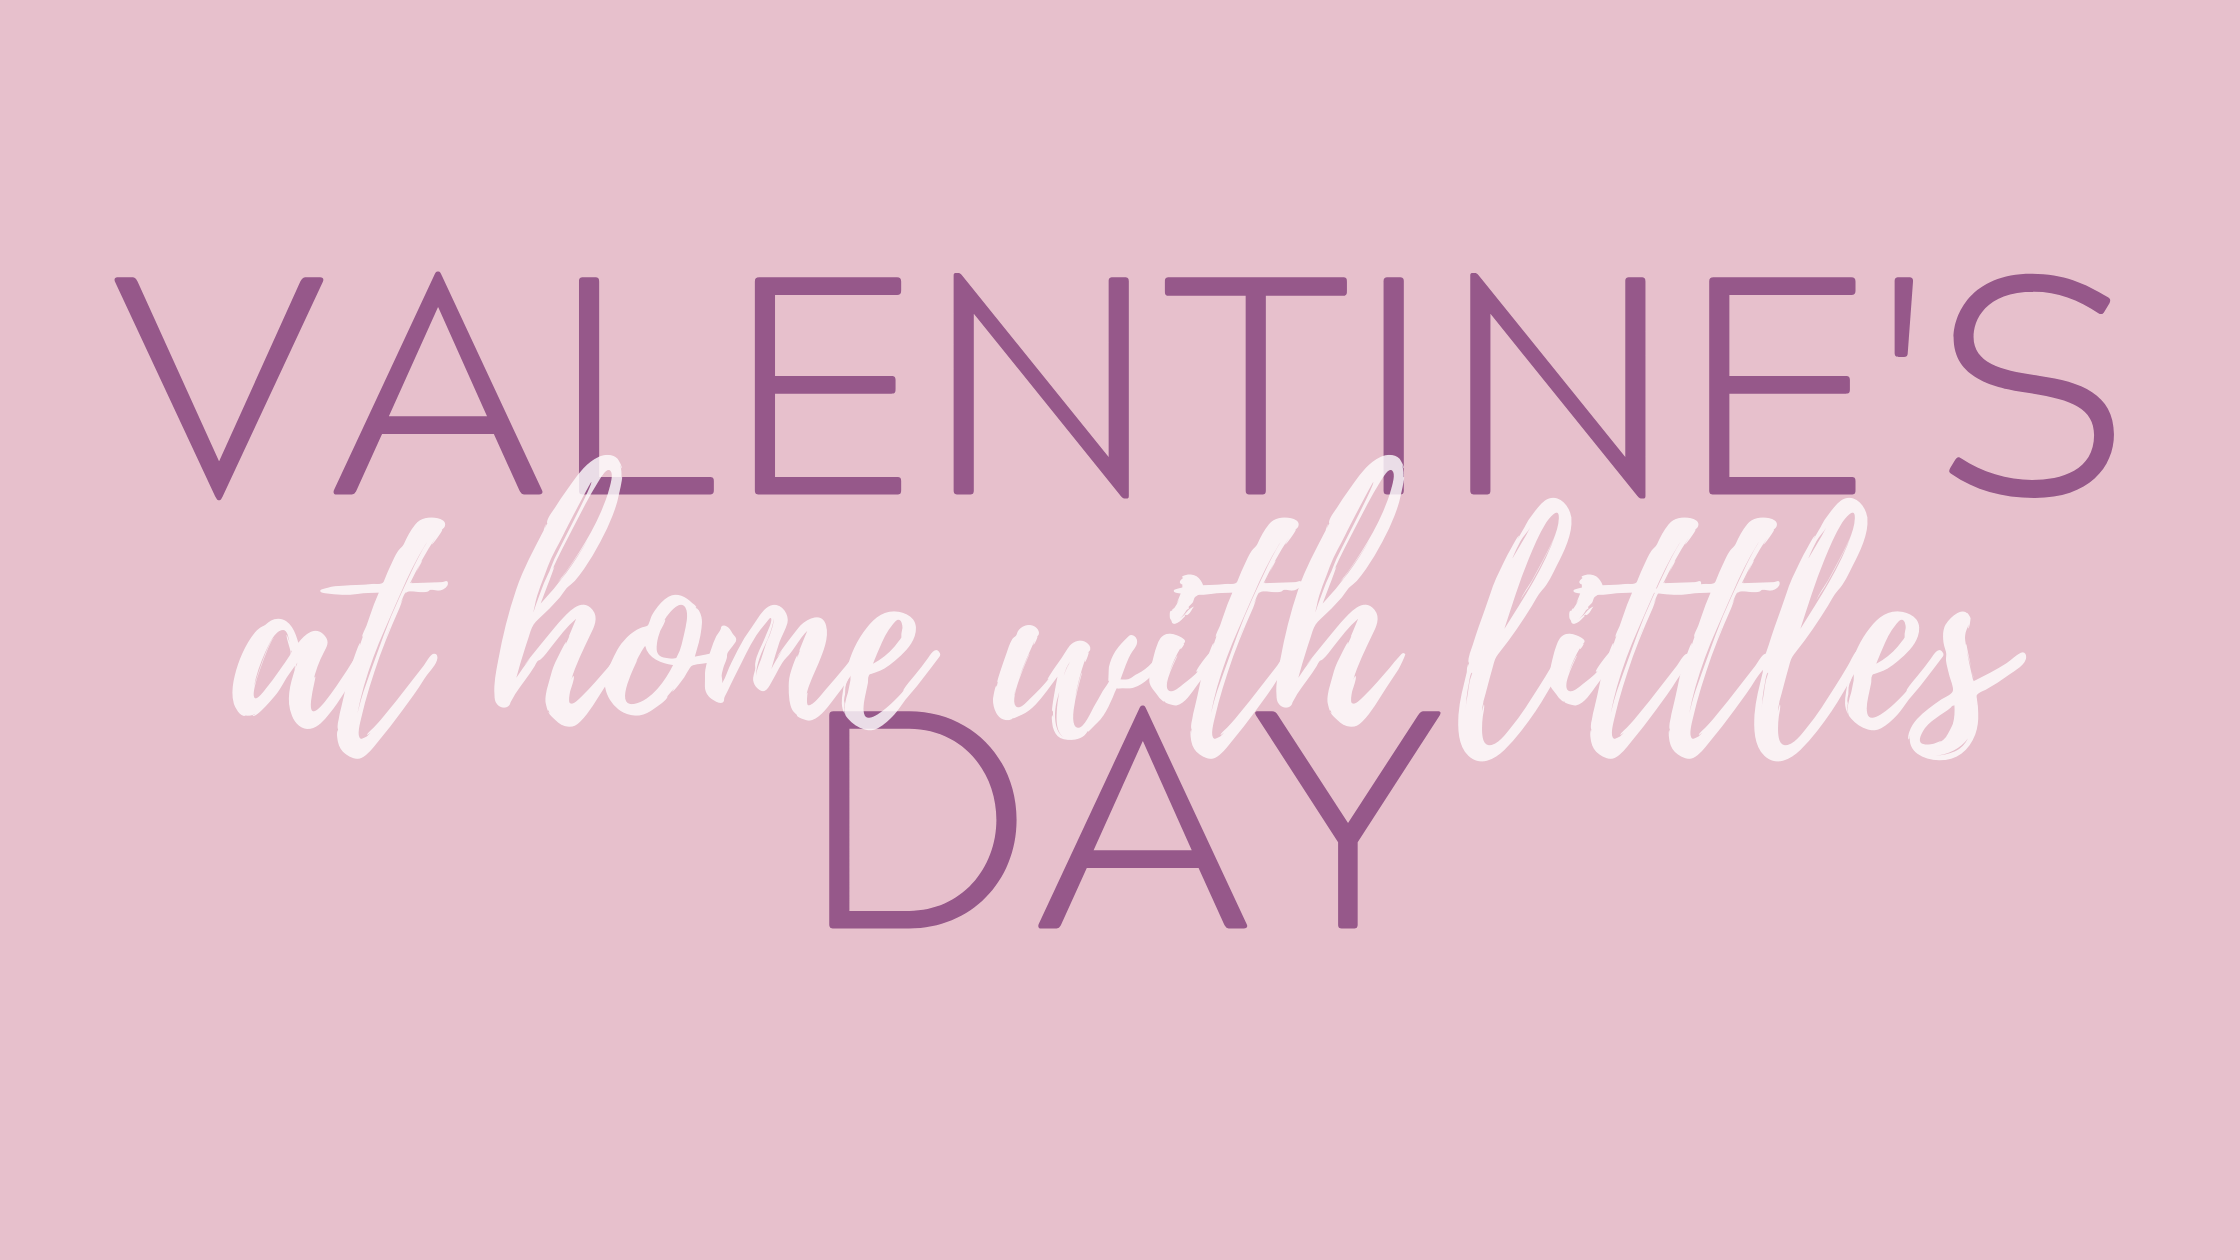 Valentine's Day at home with littles